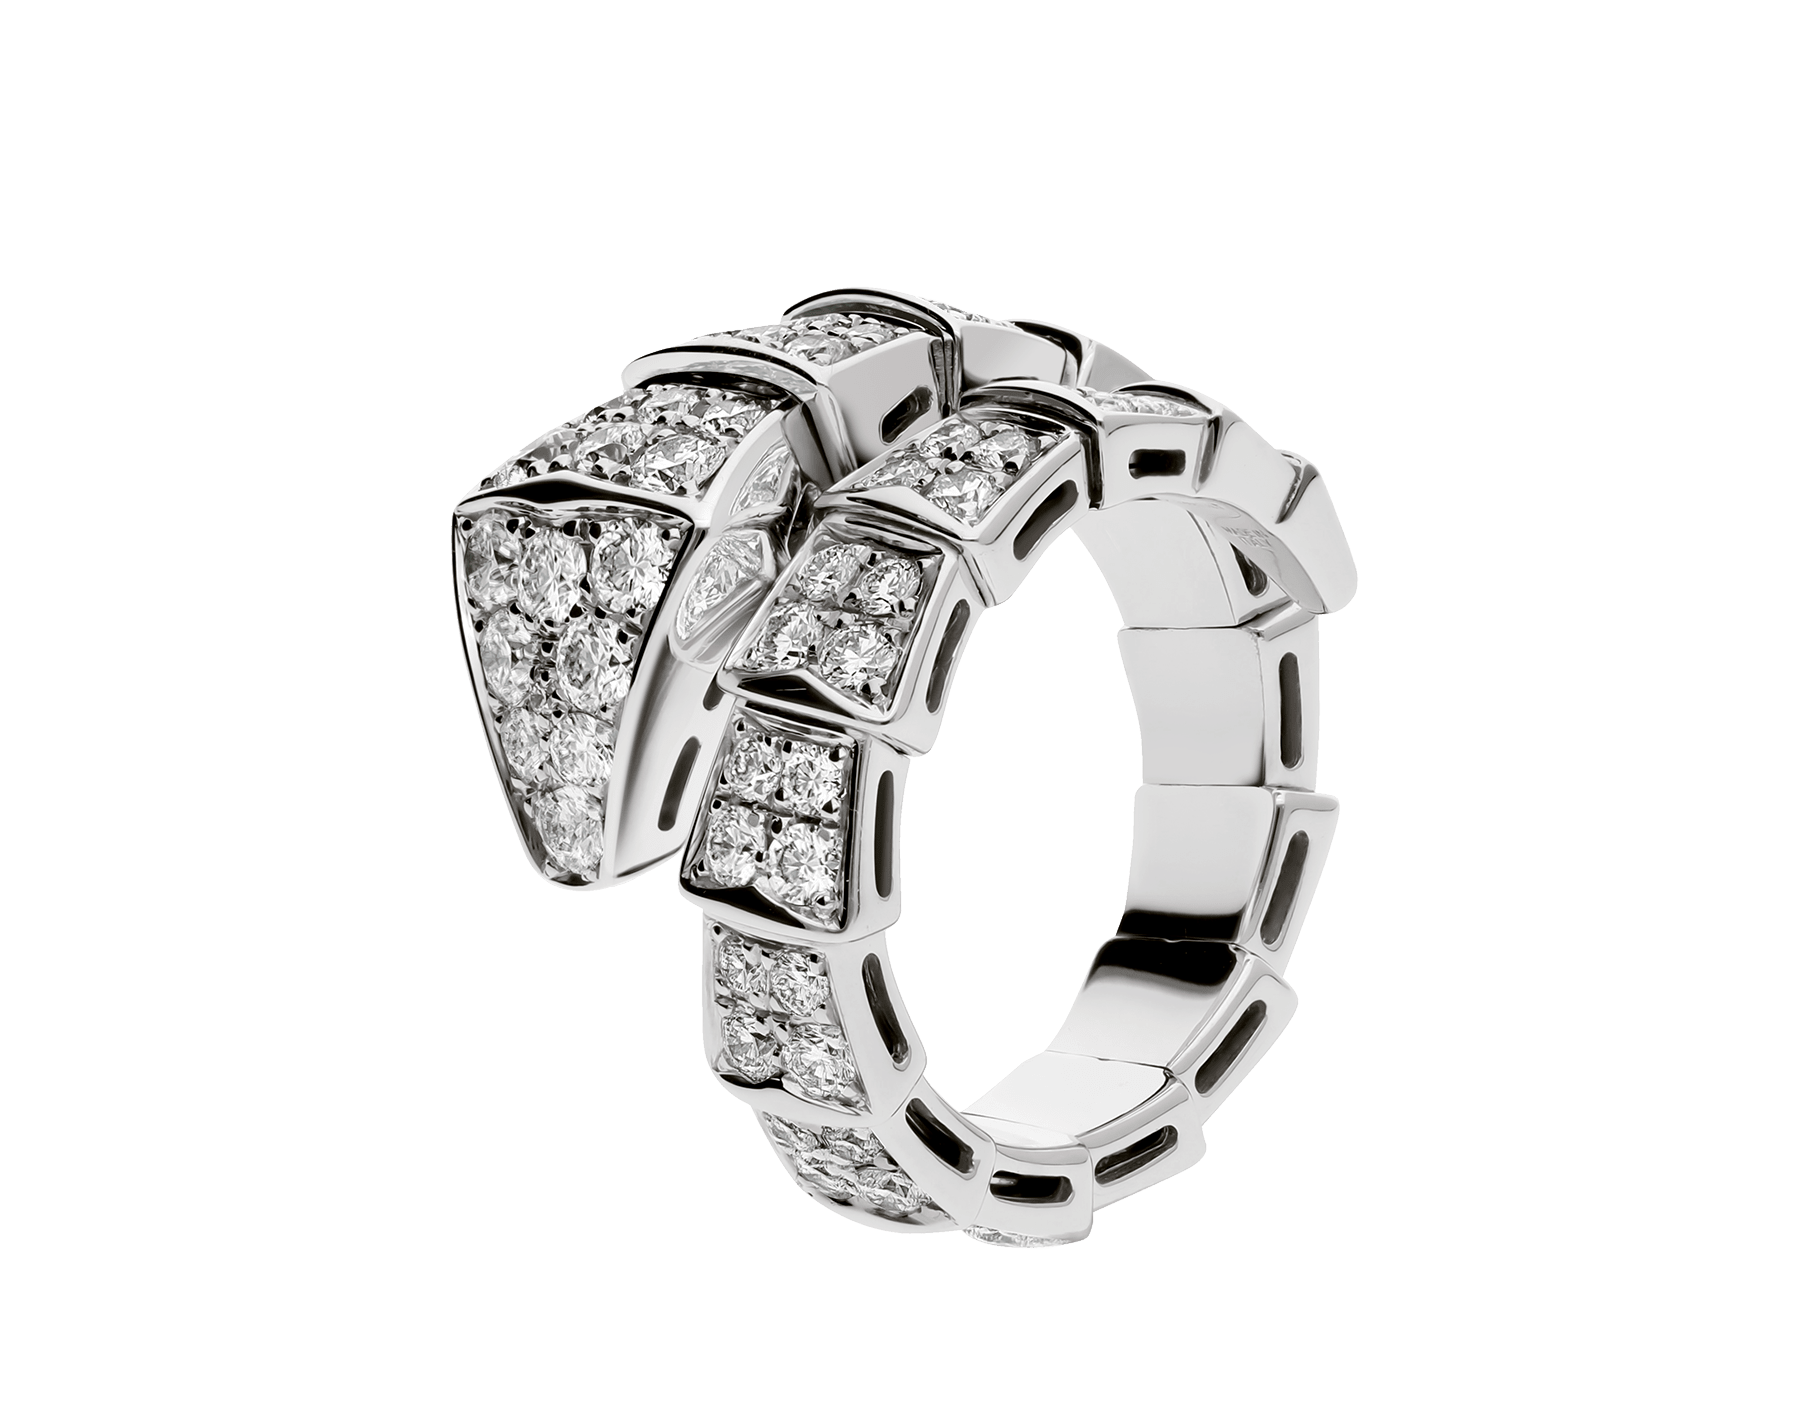 Serpenti Viper one-coil ring in 18 kt white gold, set with full pavé diamonds. AN855116 image 2